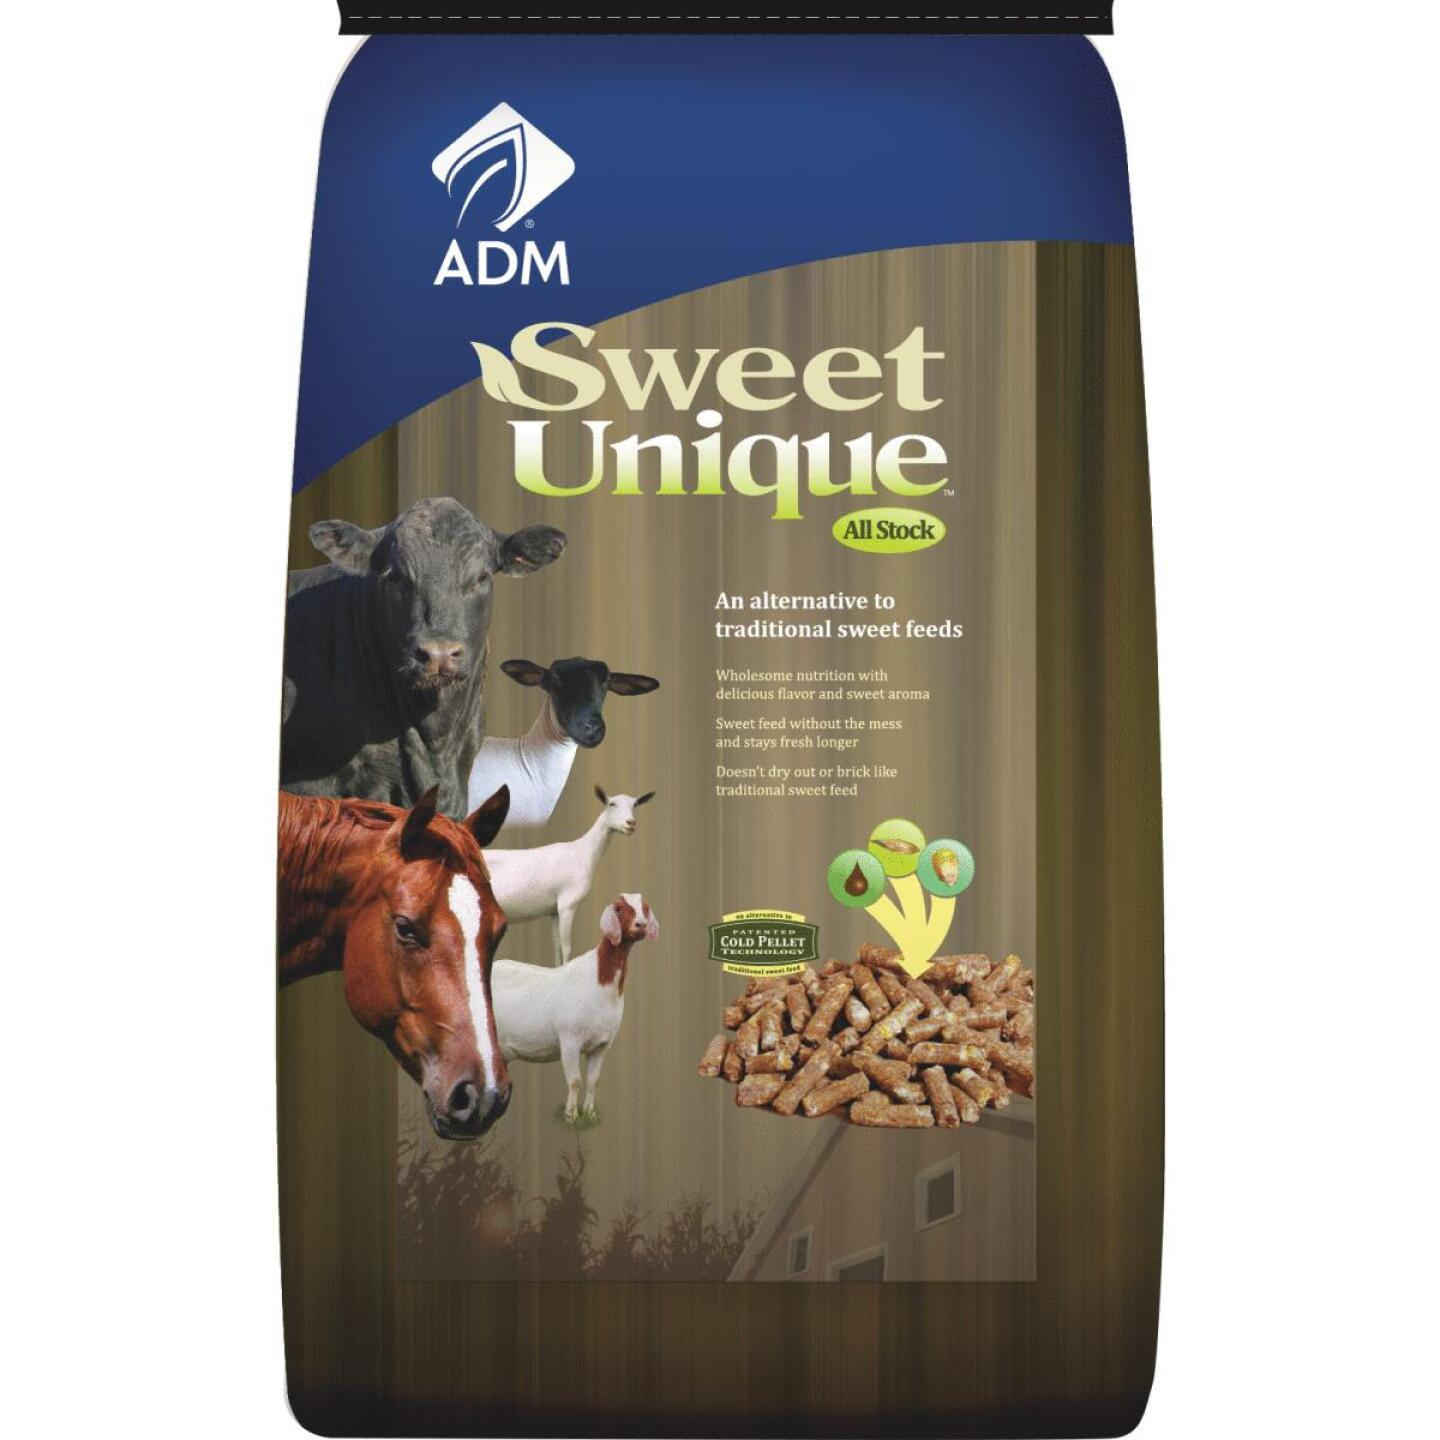 ADM Sweet Unique 50 Lb. All Stock Feed Image 1